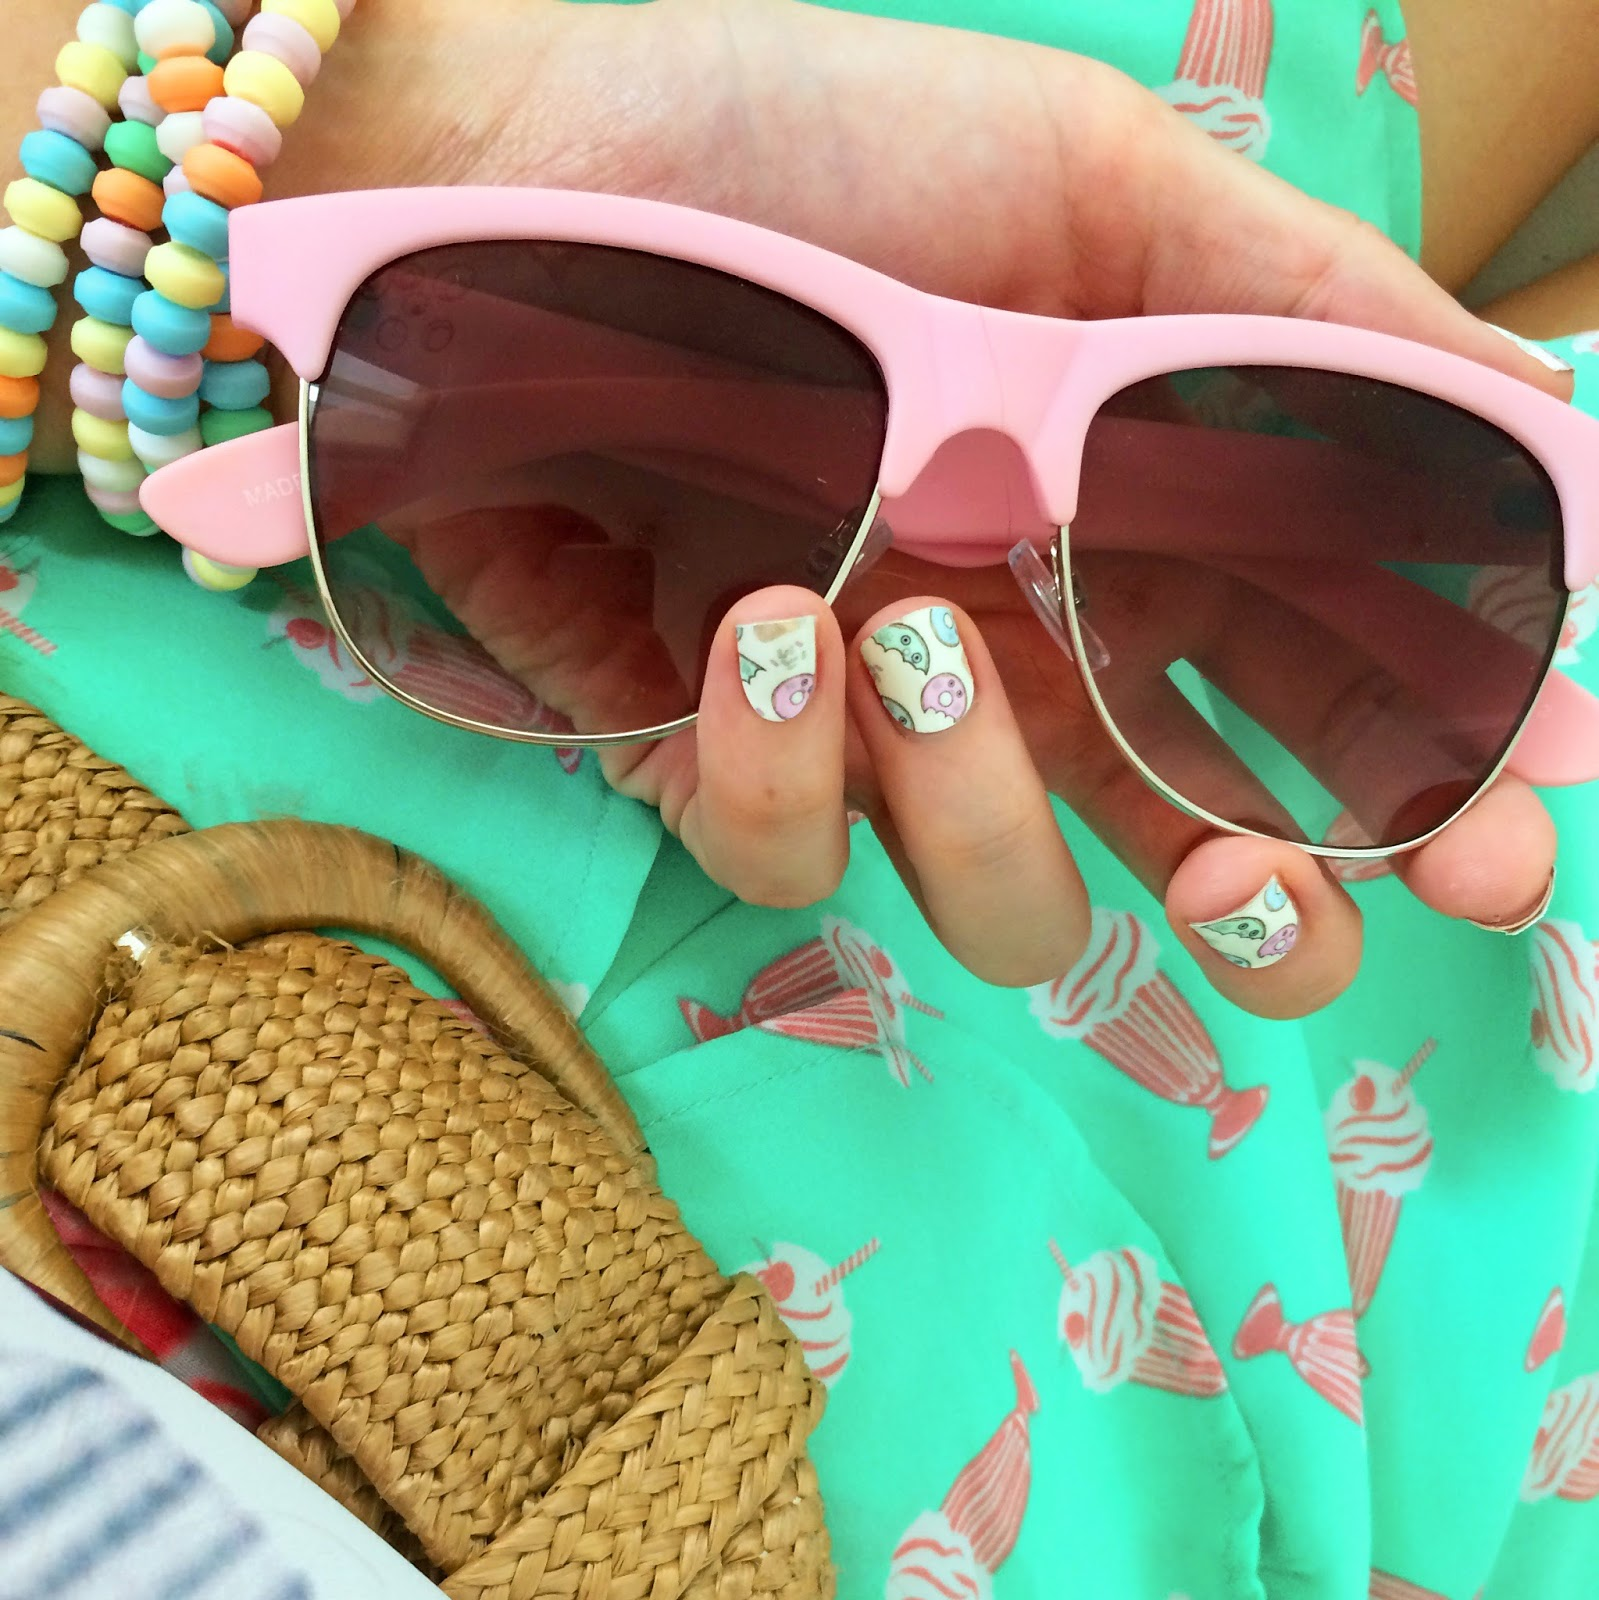 Adorable Donut Printed Nails!